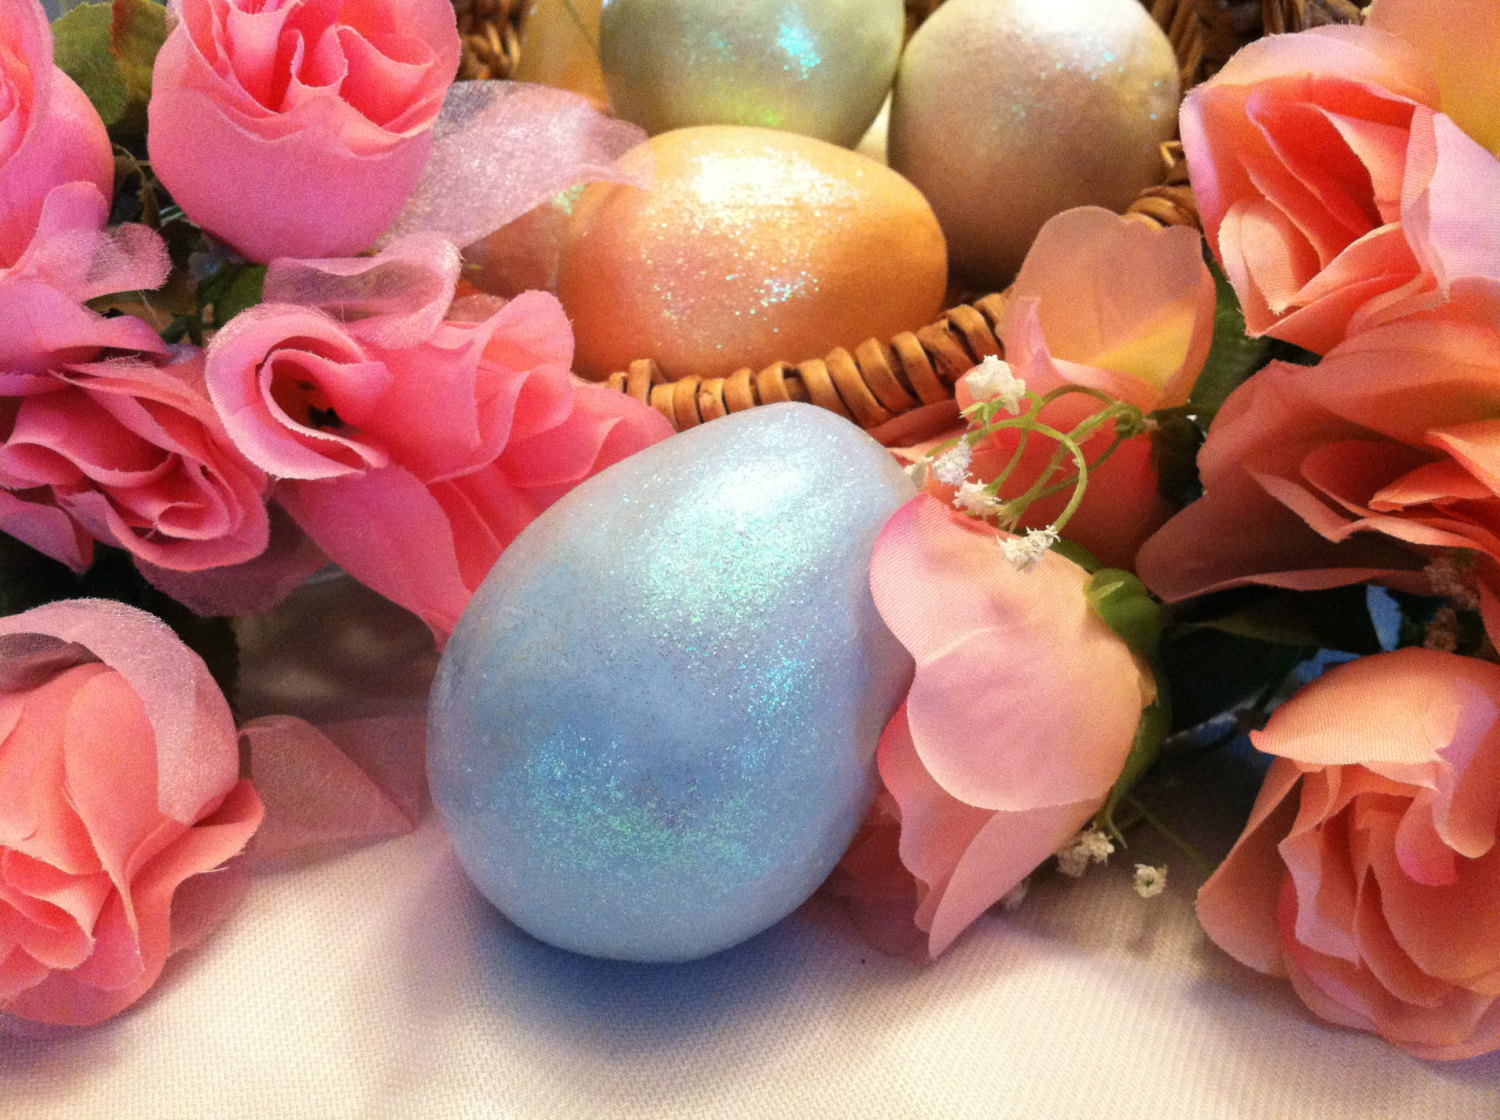 Ceramic Sky Blue Egg for Easter Display - glitter glazed with rattle inside